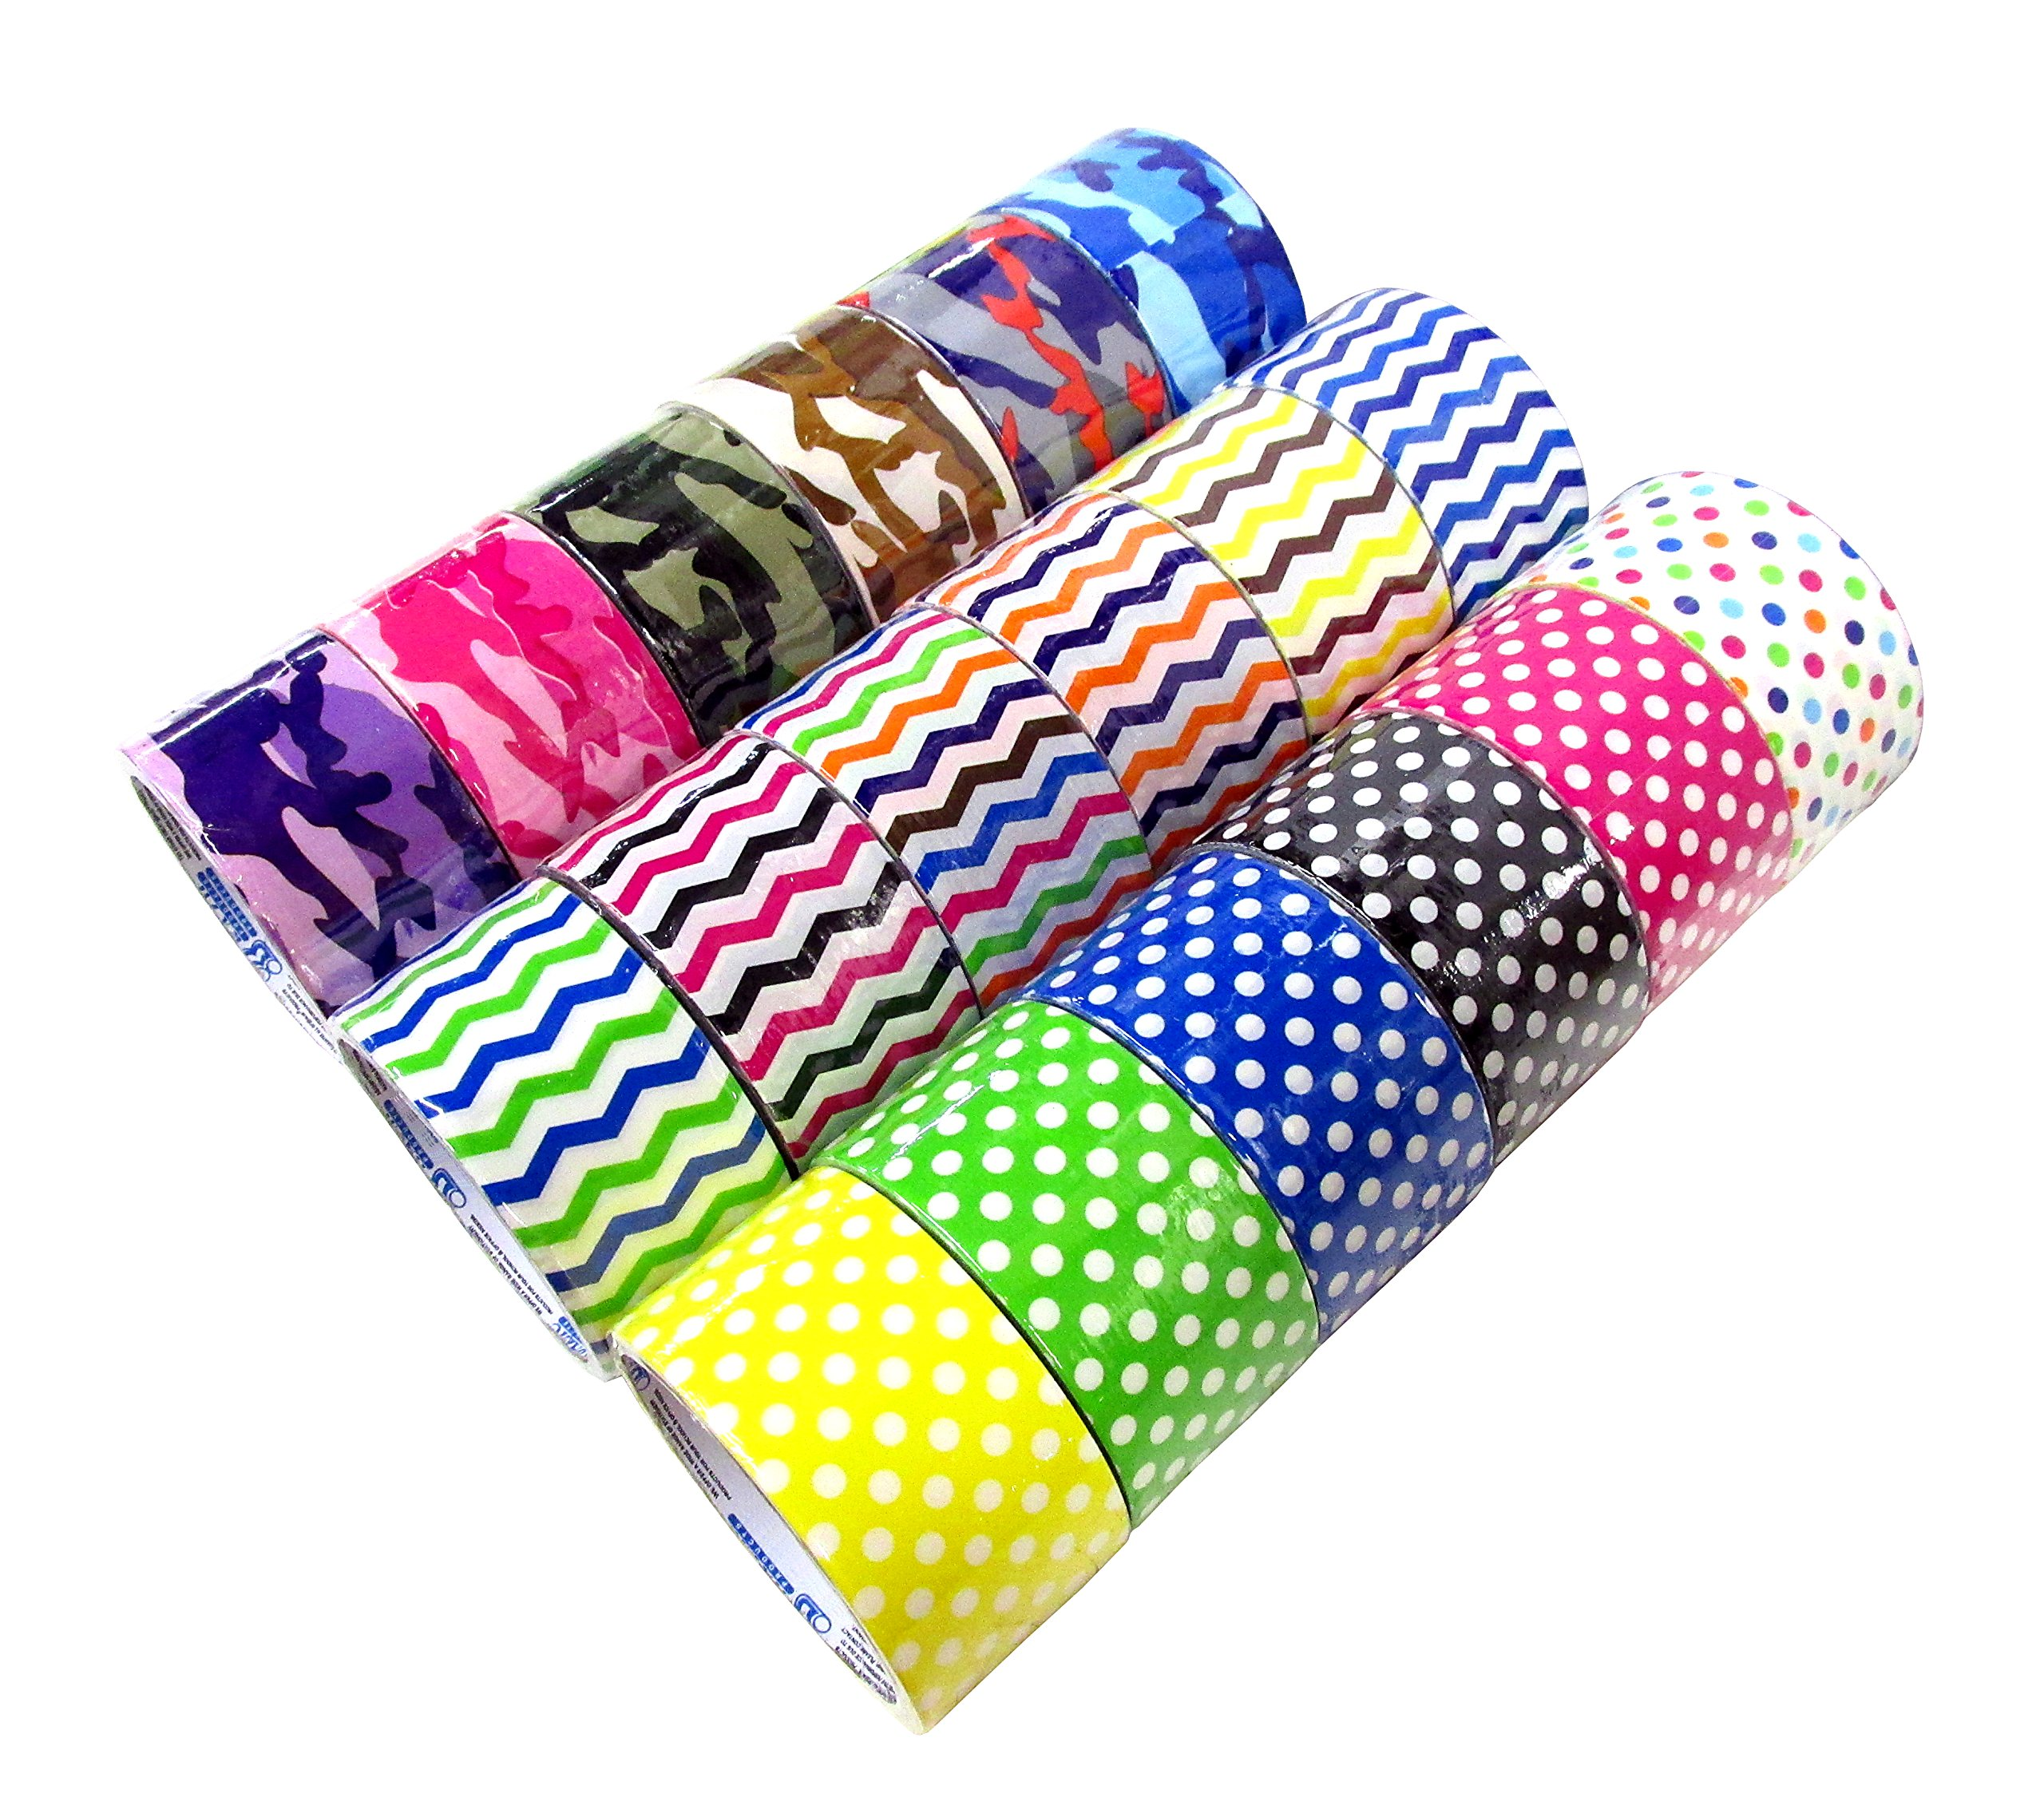 18 Roll Variety Pack of Decorative Duct Style Tape! (6 Polka-dot + 6 Chevron + 6 Colorful Camouflage)